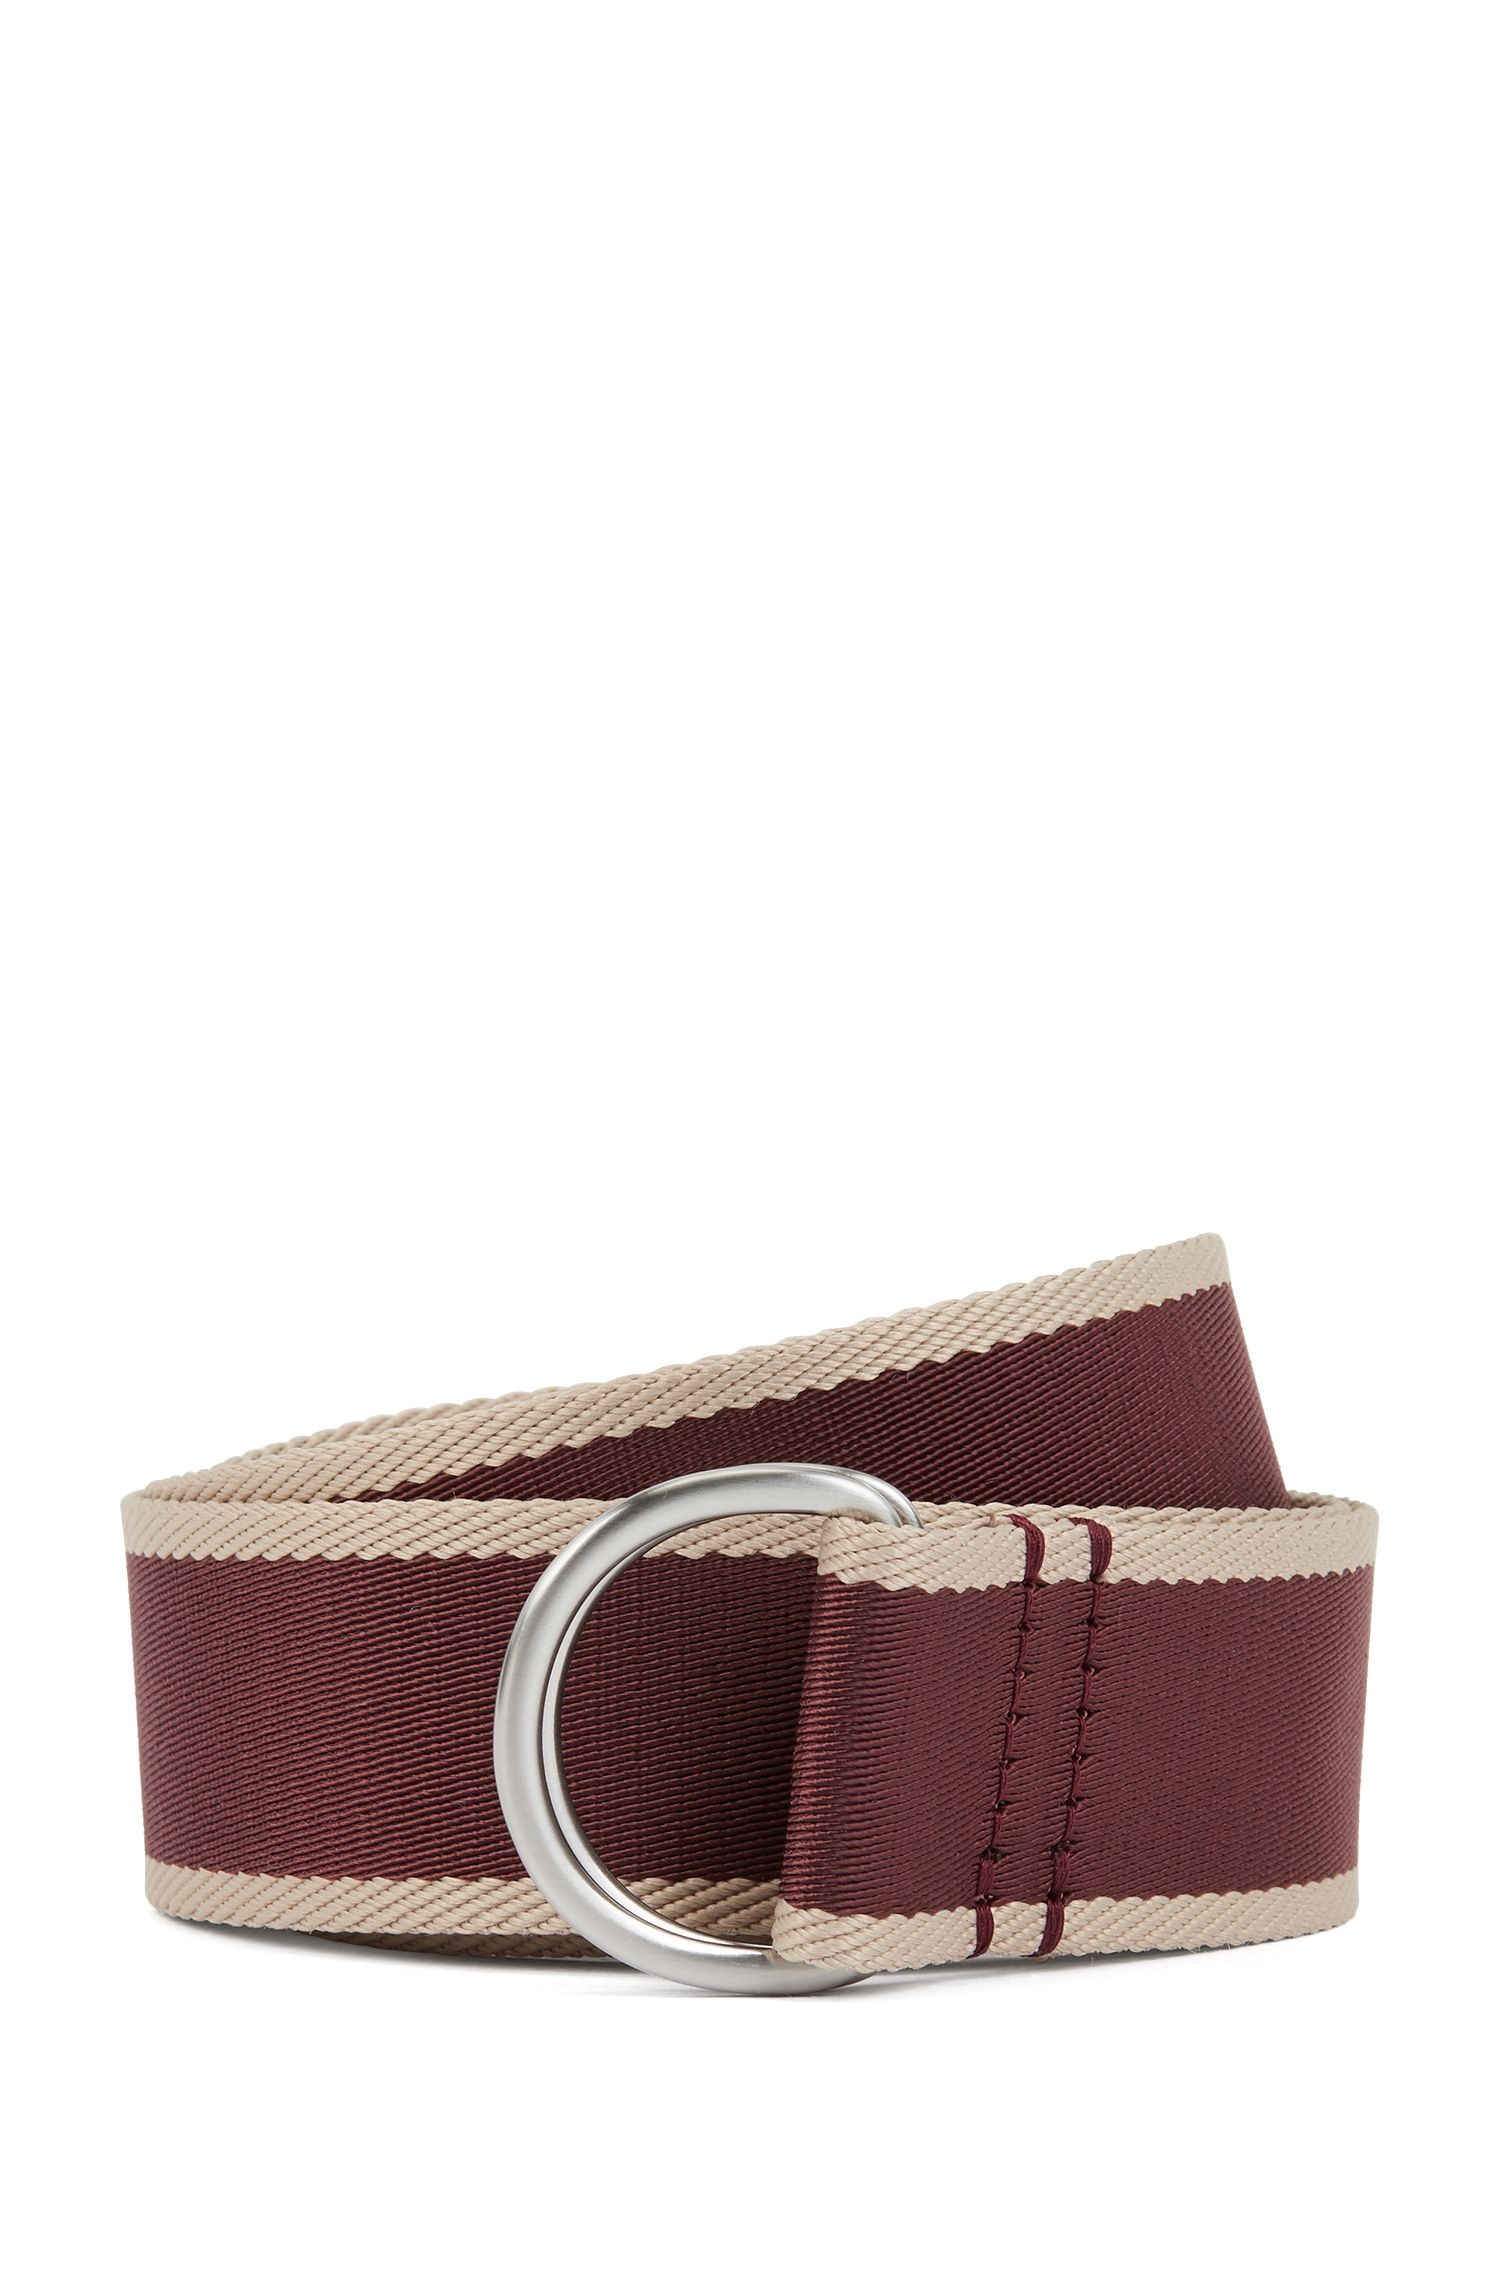 Two-tone webbing belt with D-ring buckle, Dark Red